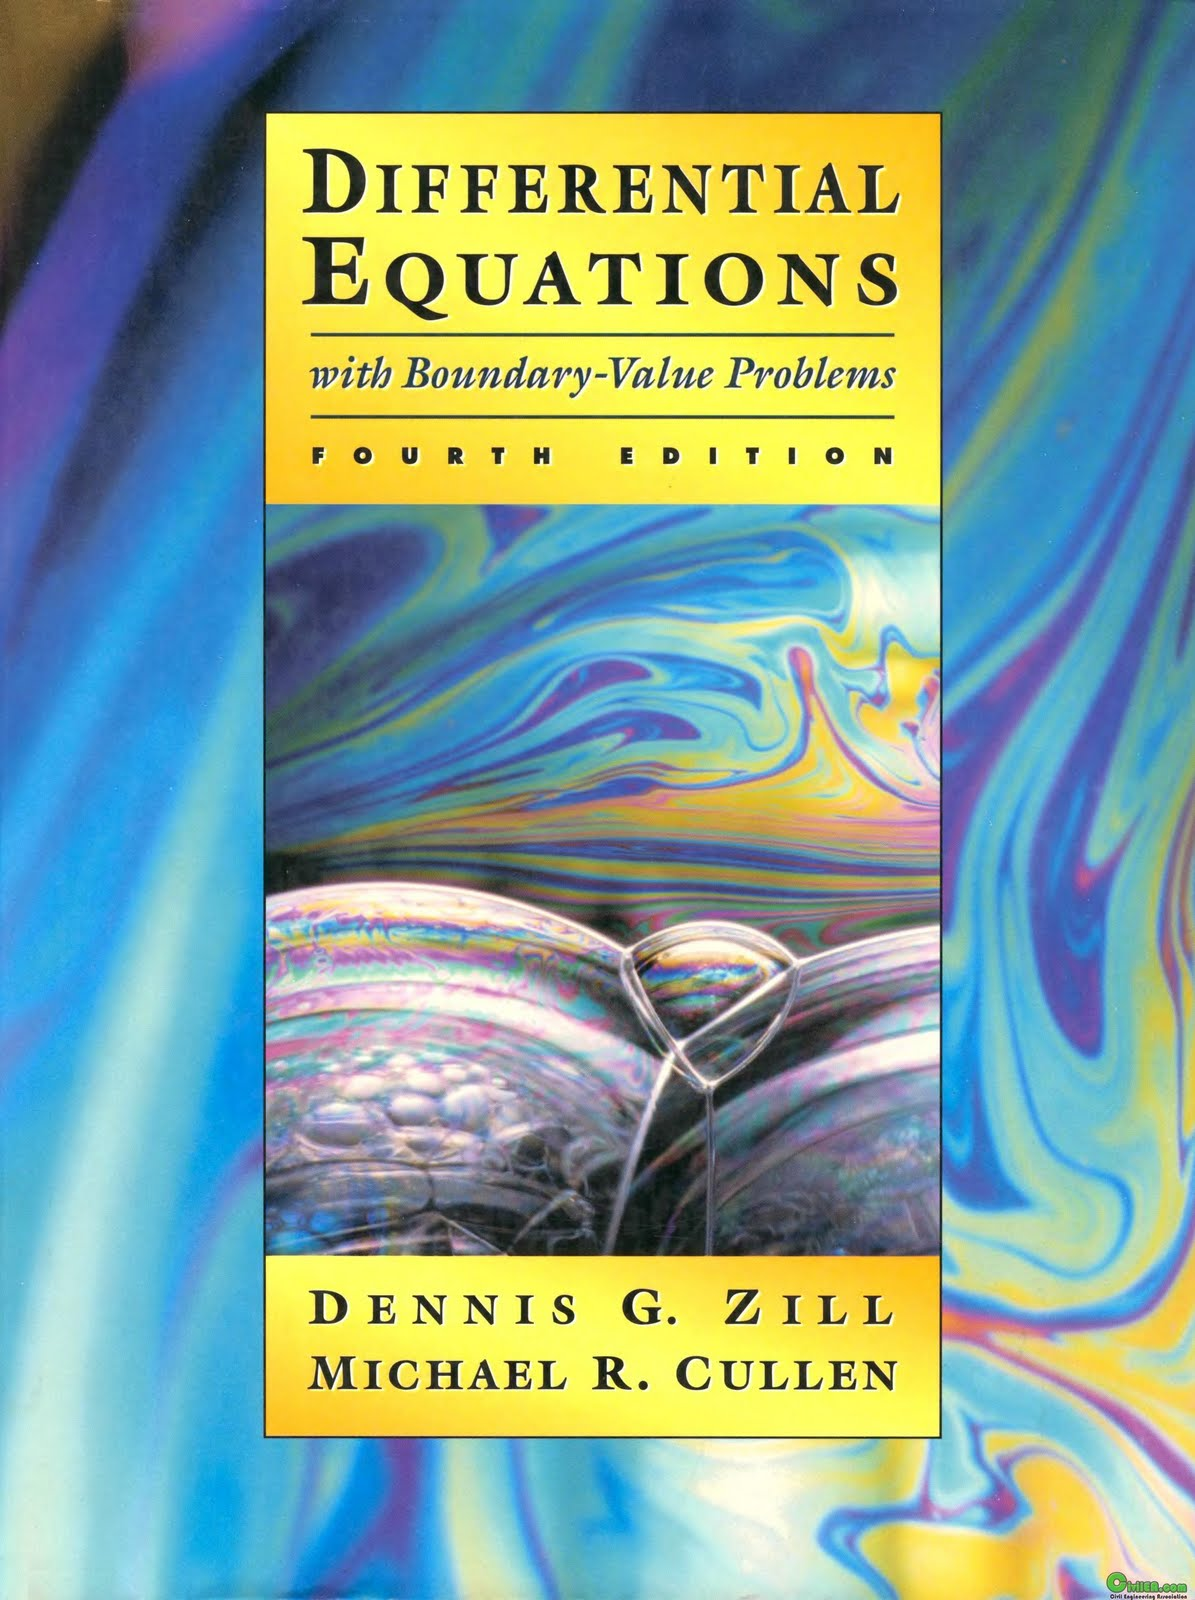 free books and solutions manual free ebooks bscs bcs free rh solutionsfree  blogspot com dennis g zill differential equations solution manual 10th  edition ...